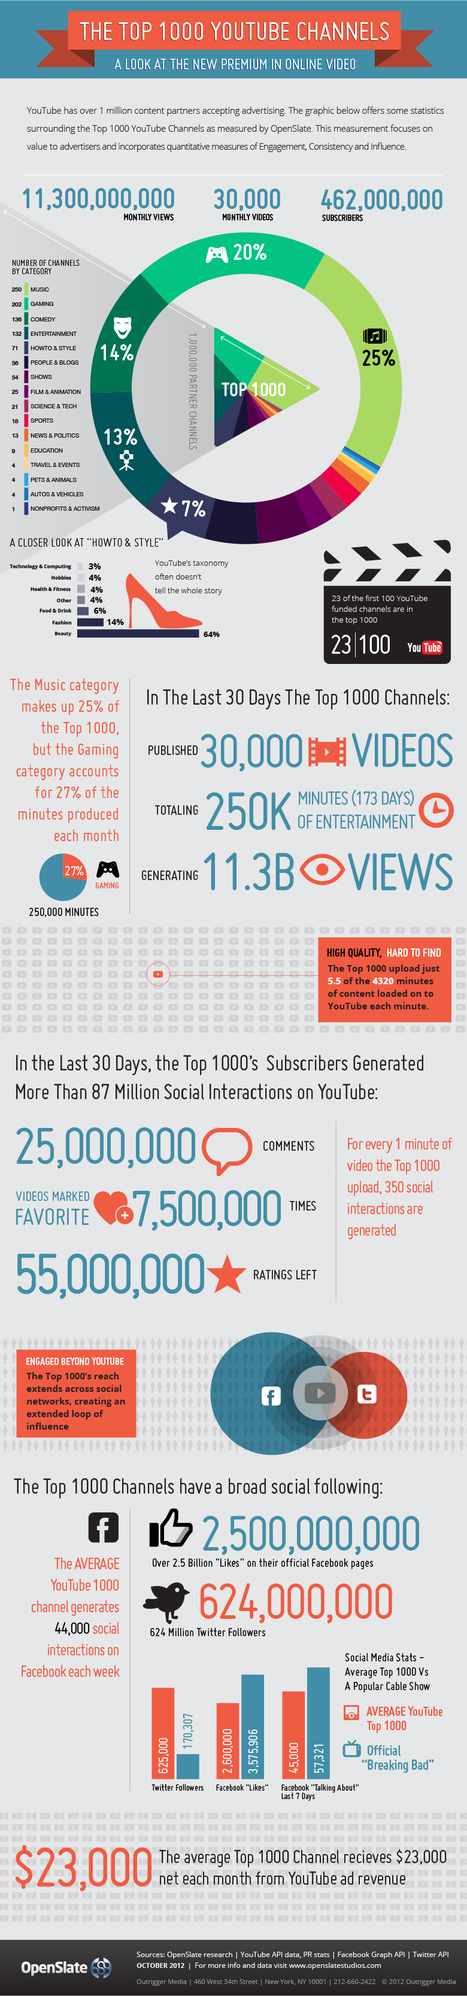 The Top 1000 YouTube Channels [INFOGRAPHIC] | videosforlearning | Scoop.it